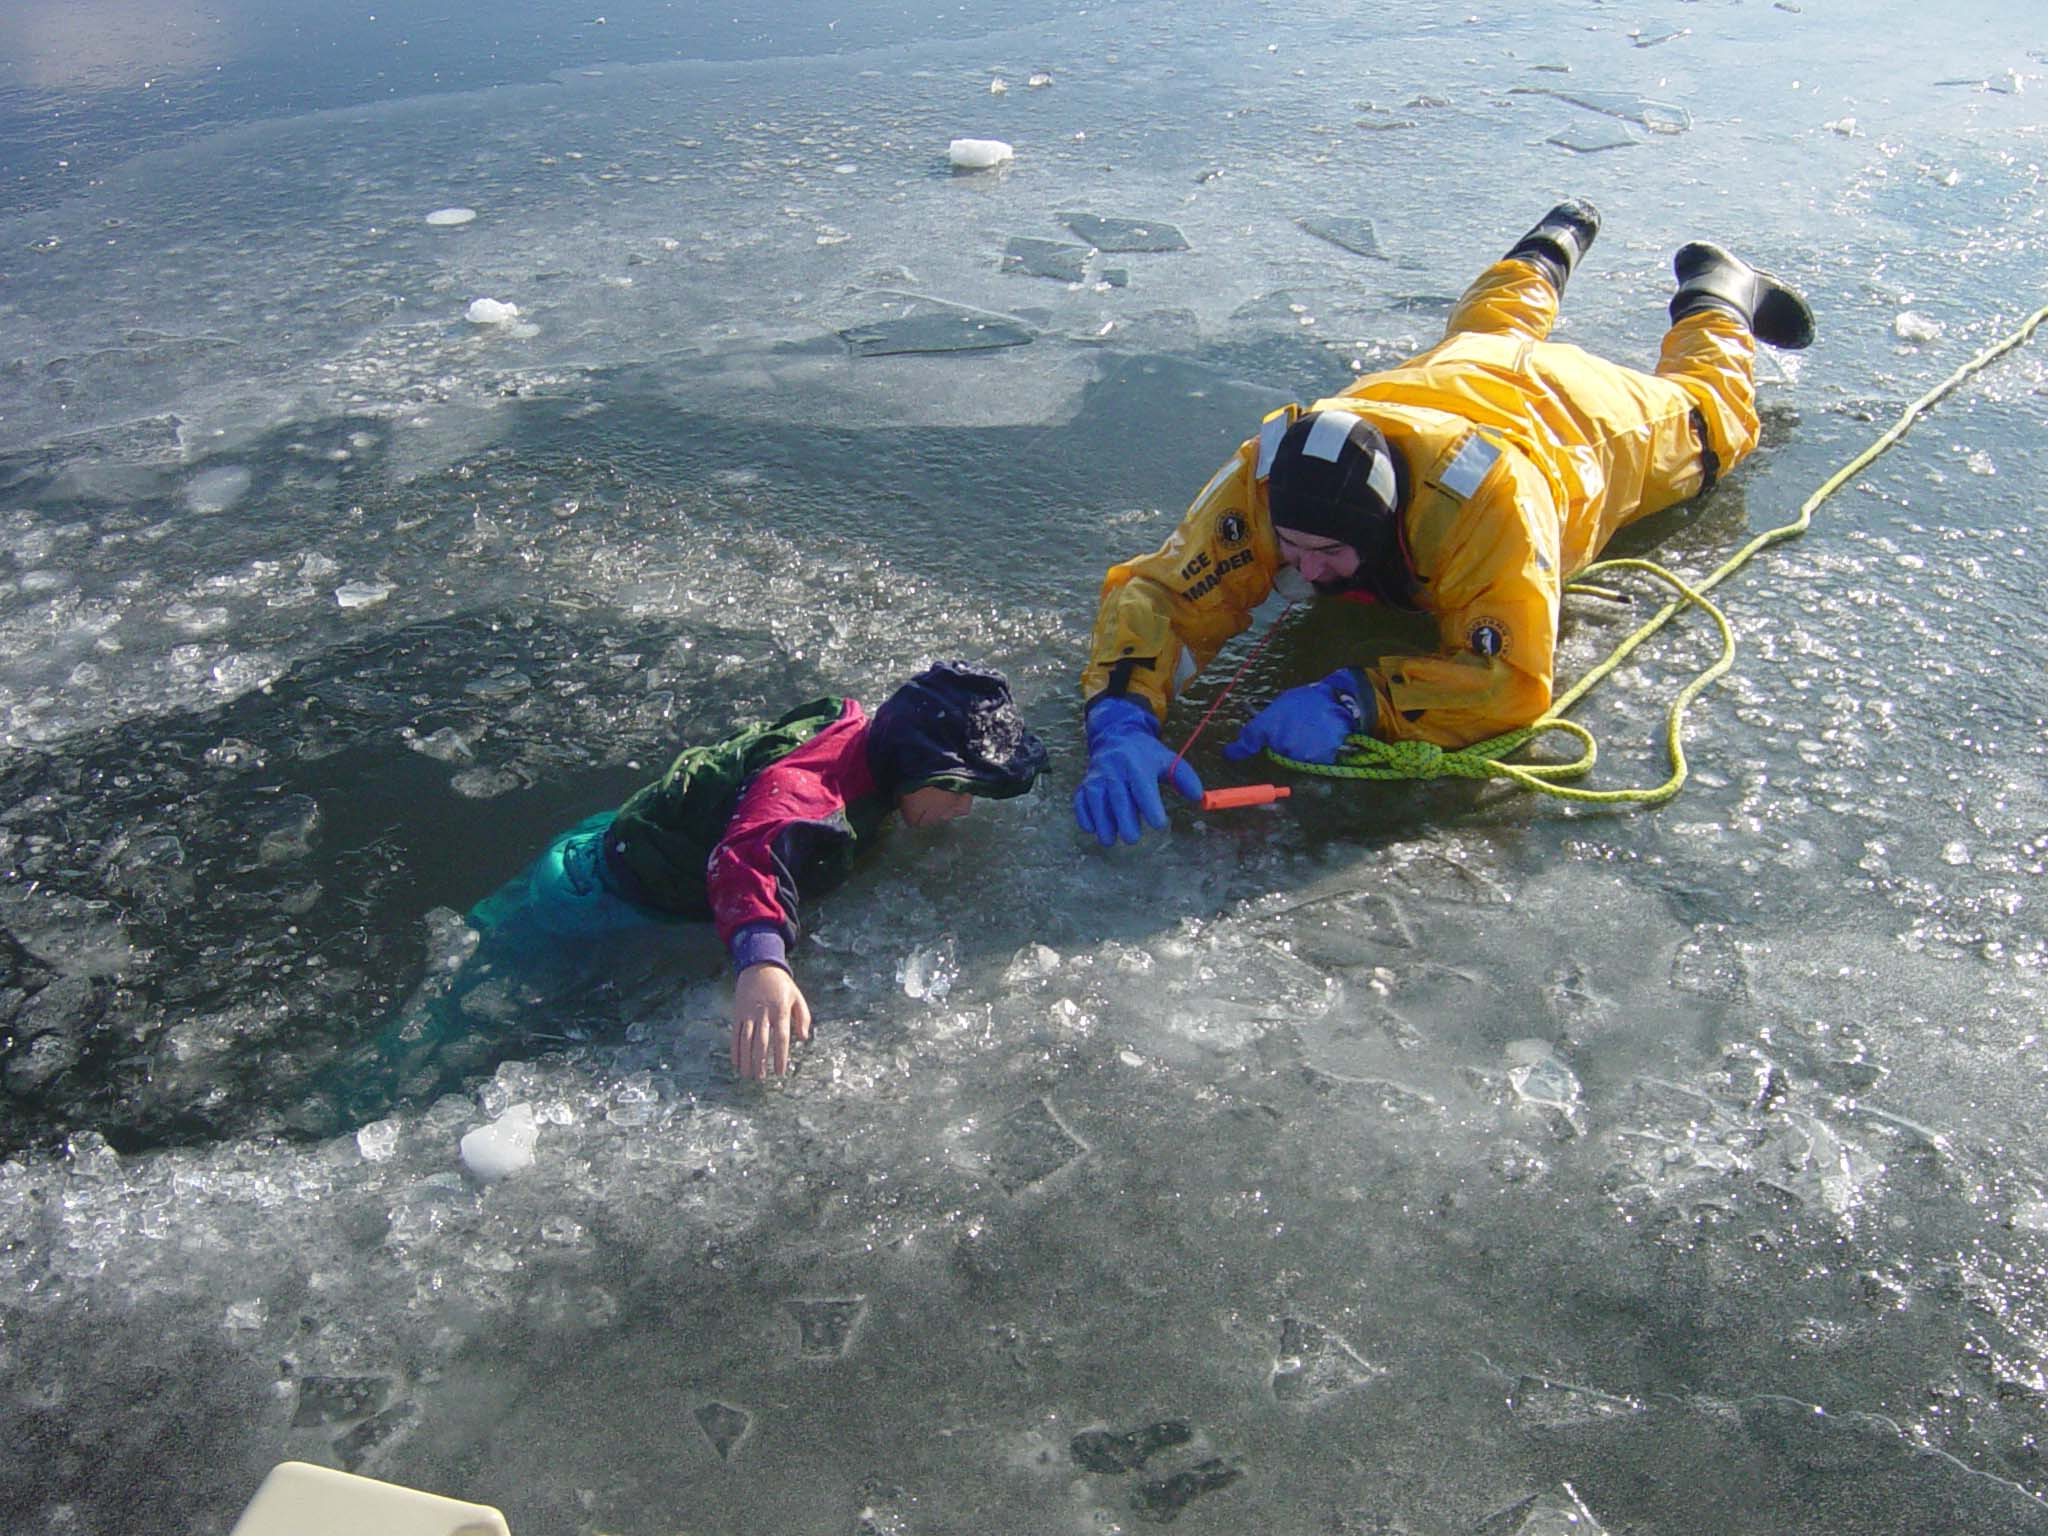 Firefighter practices ice rescue techniques with a child-size mannequin at a winter training drill.